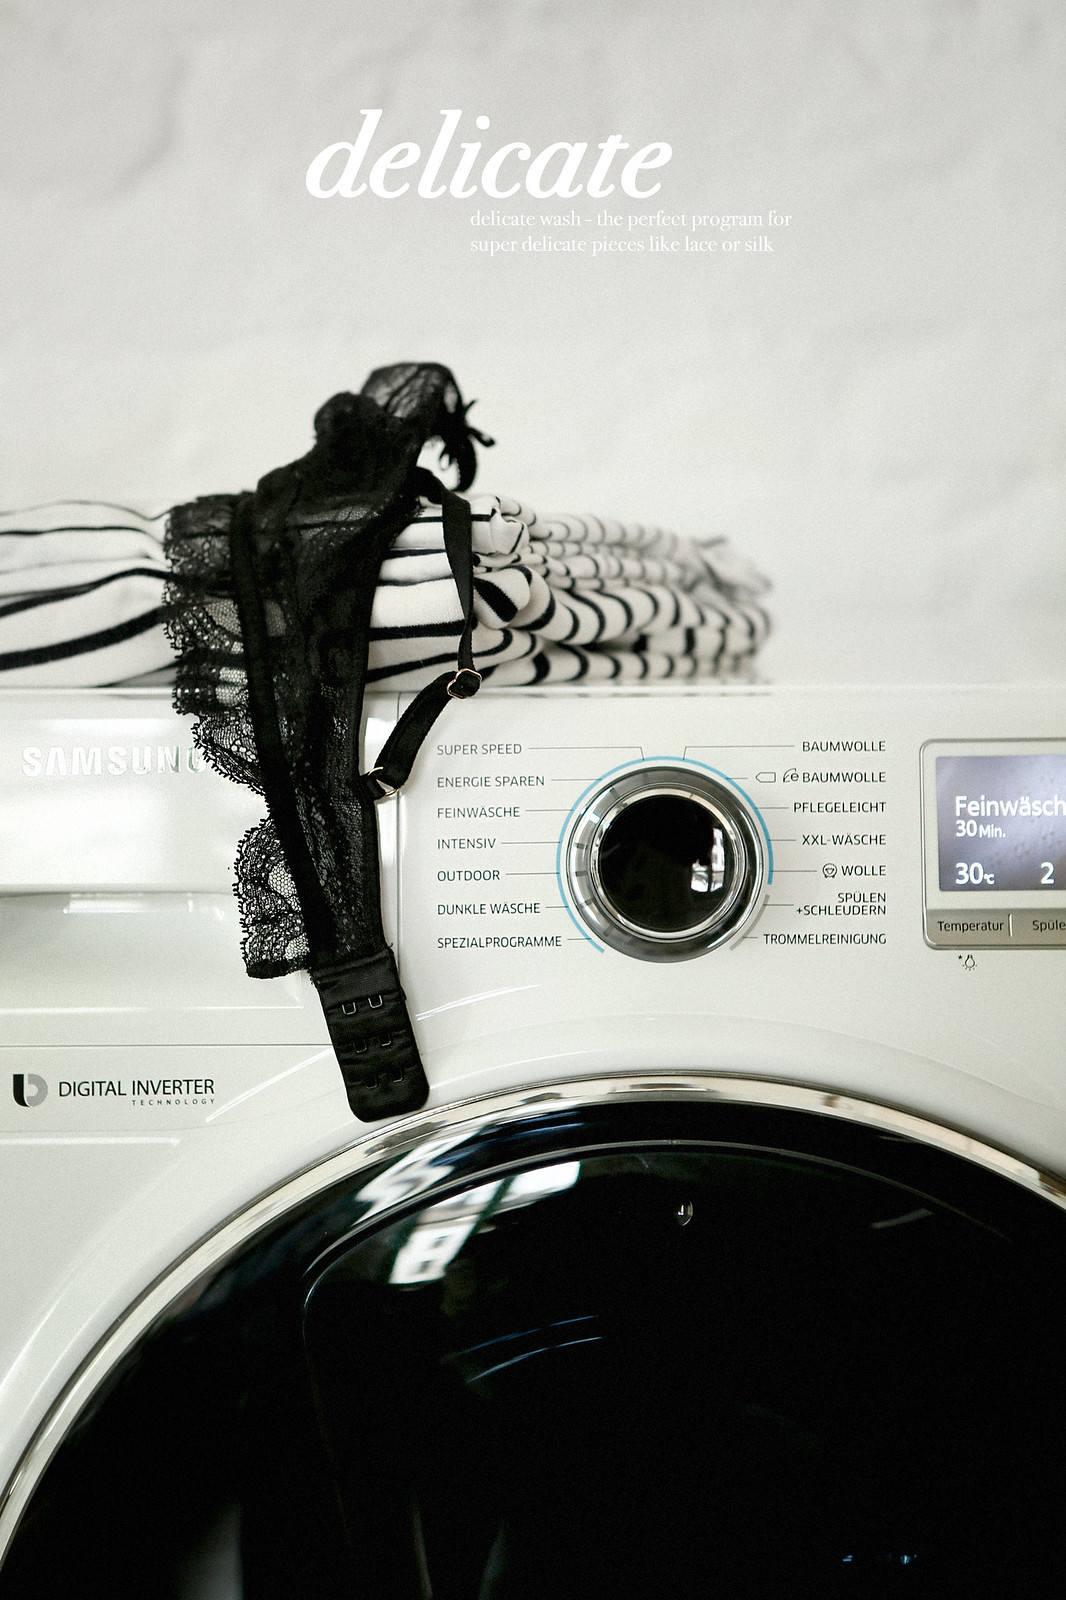 samsung addwash waschmaschine washing machine how to wash laundry wäsche tipps modeblog modeblogger ricarda schernus cats & dogs blog düsseldorf 4